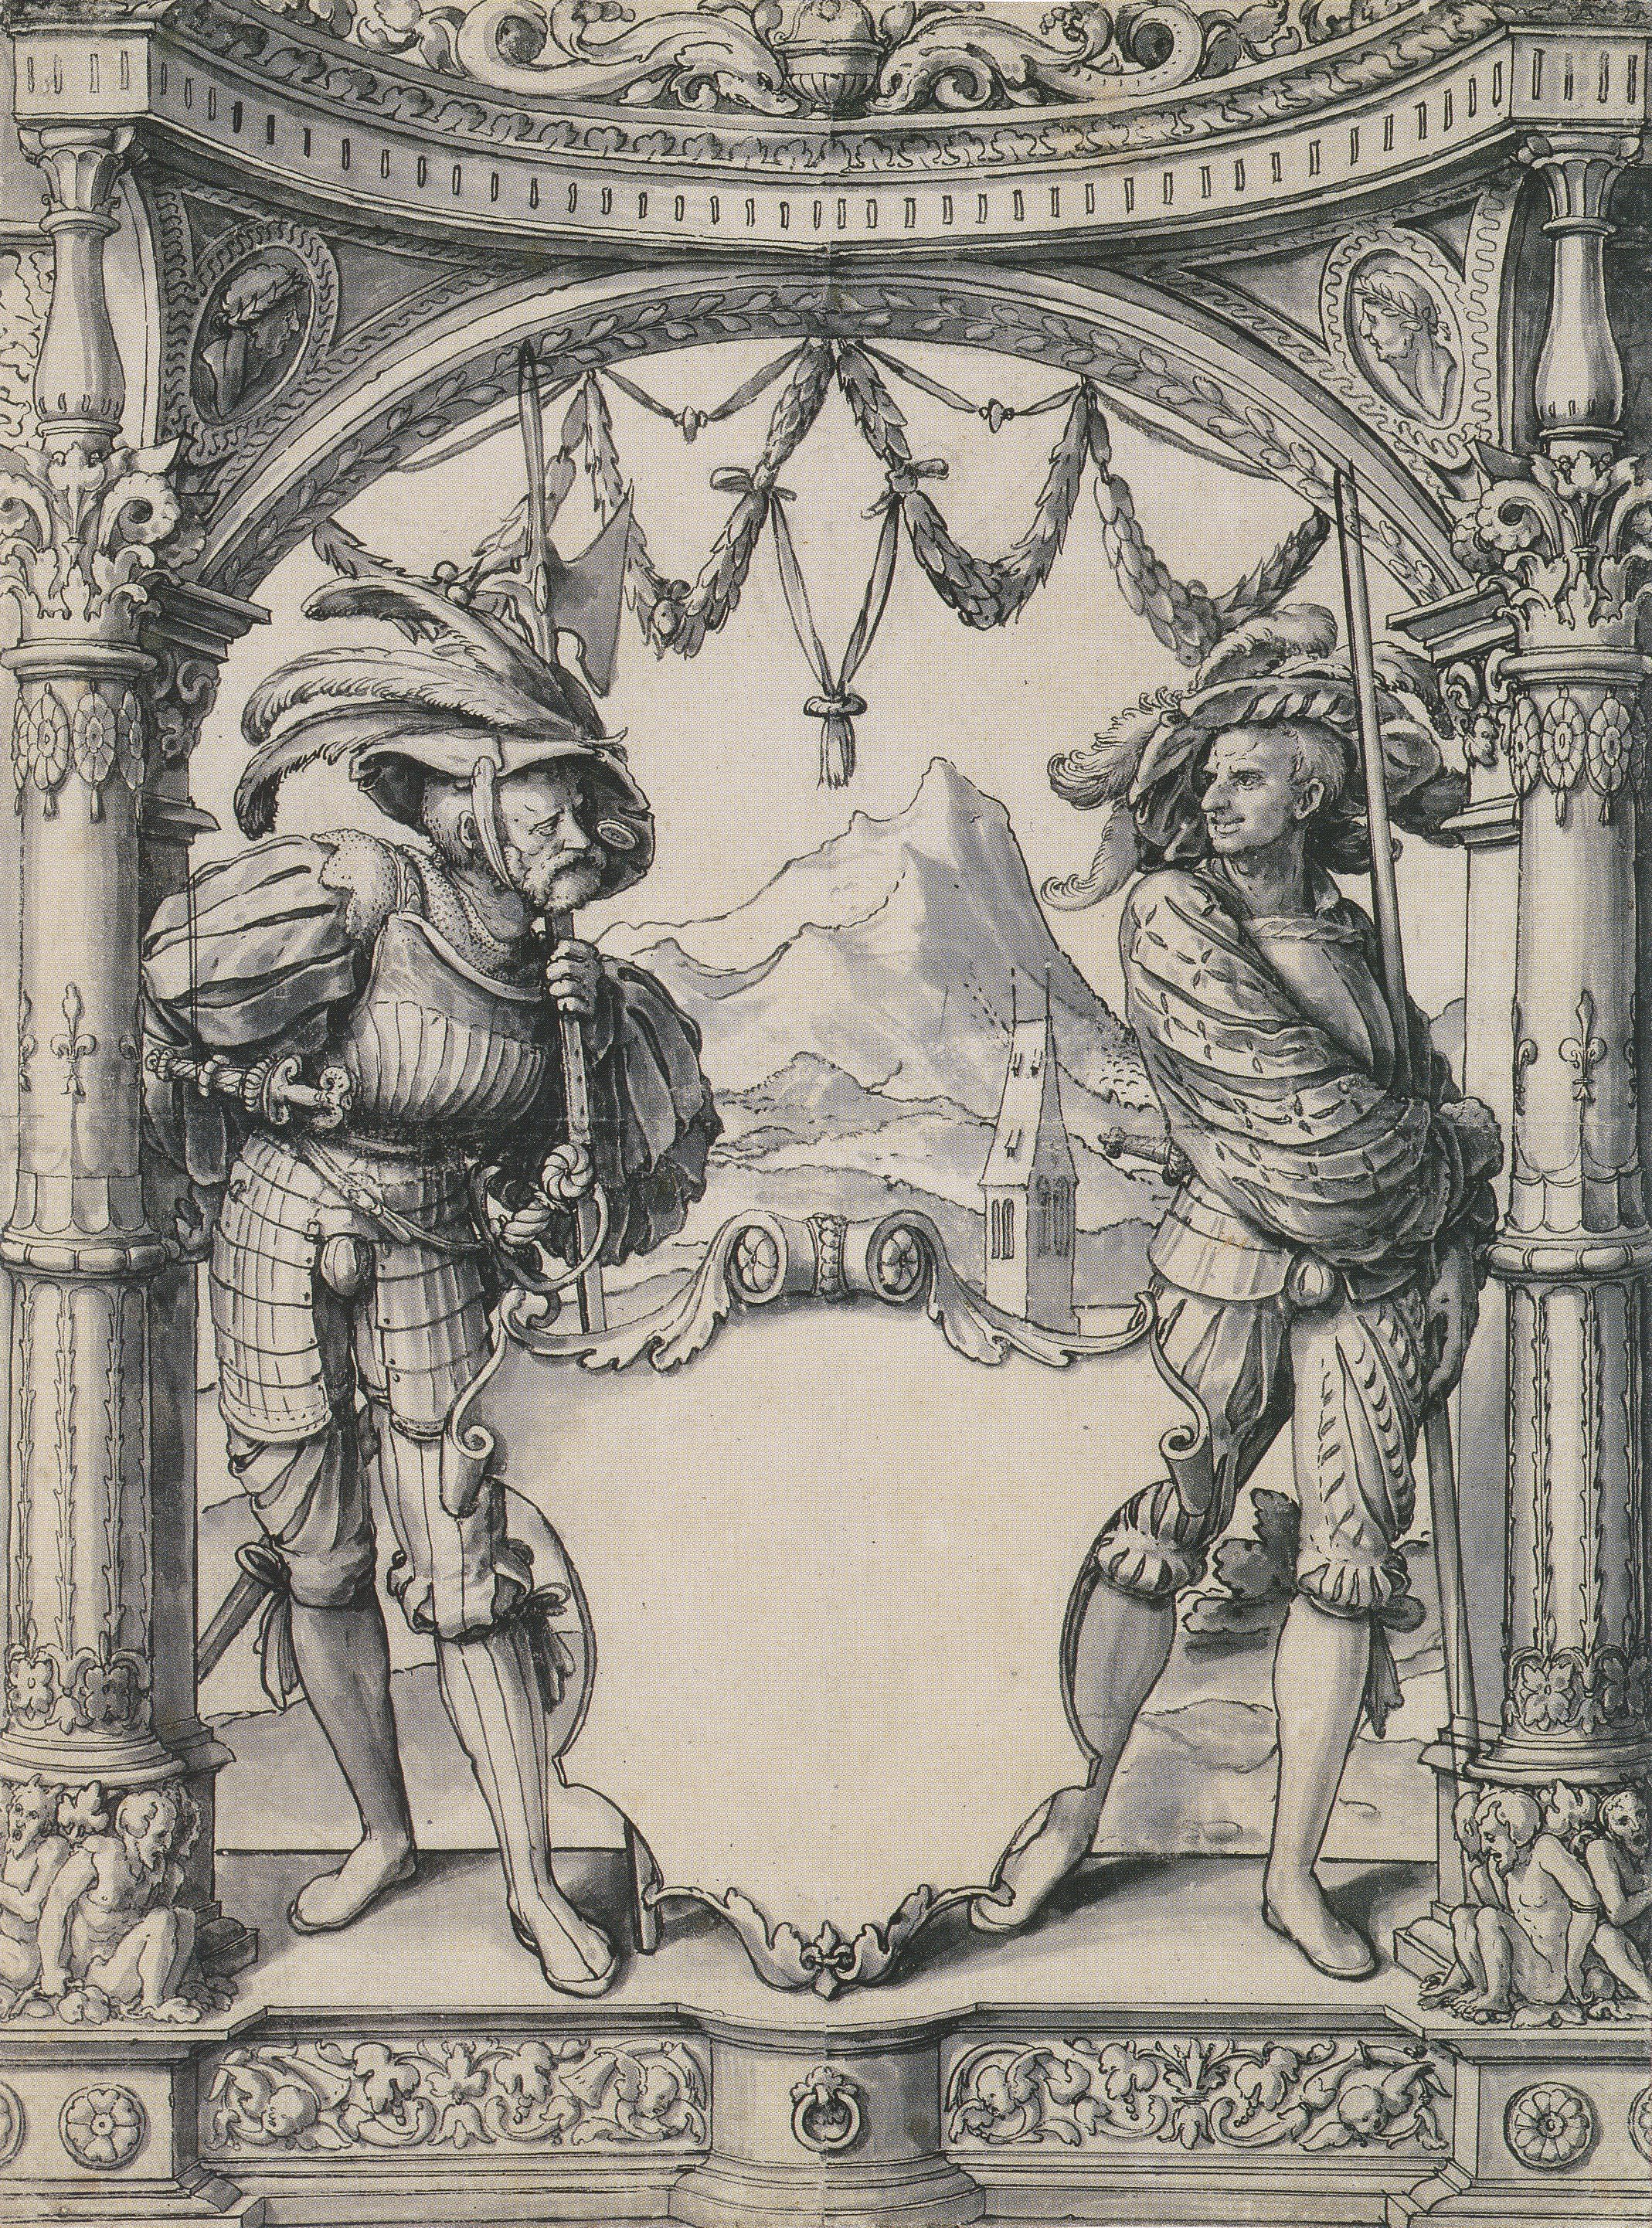 Two Swiss Mercenaries, design for a Stained Glass Window, workshop of Hans Holbein the Younger. c.1525